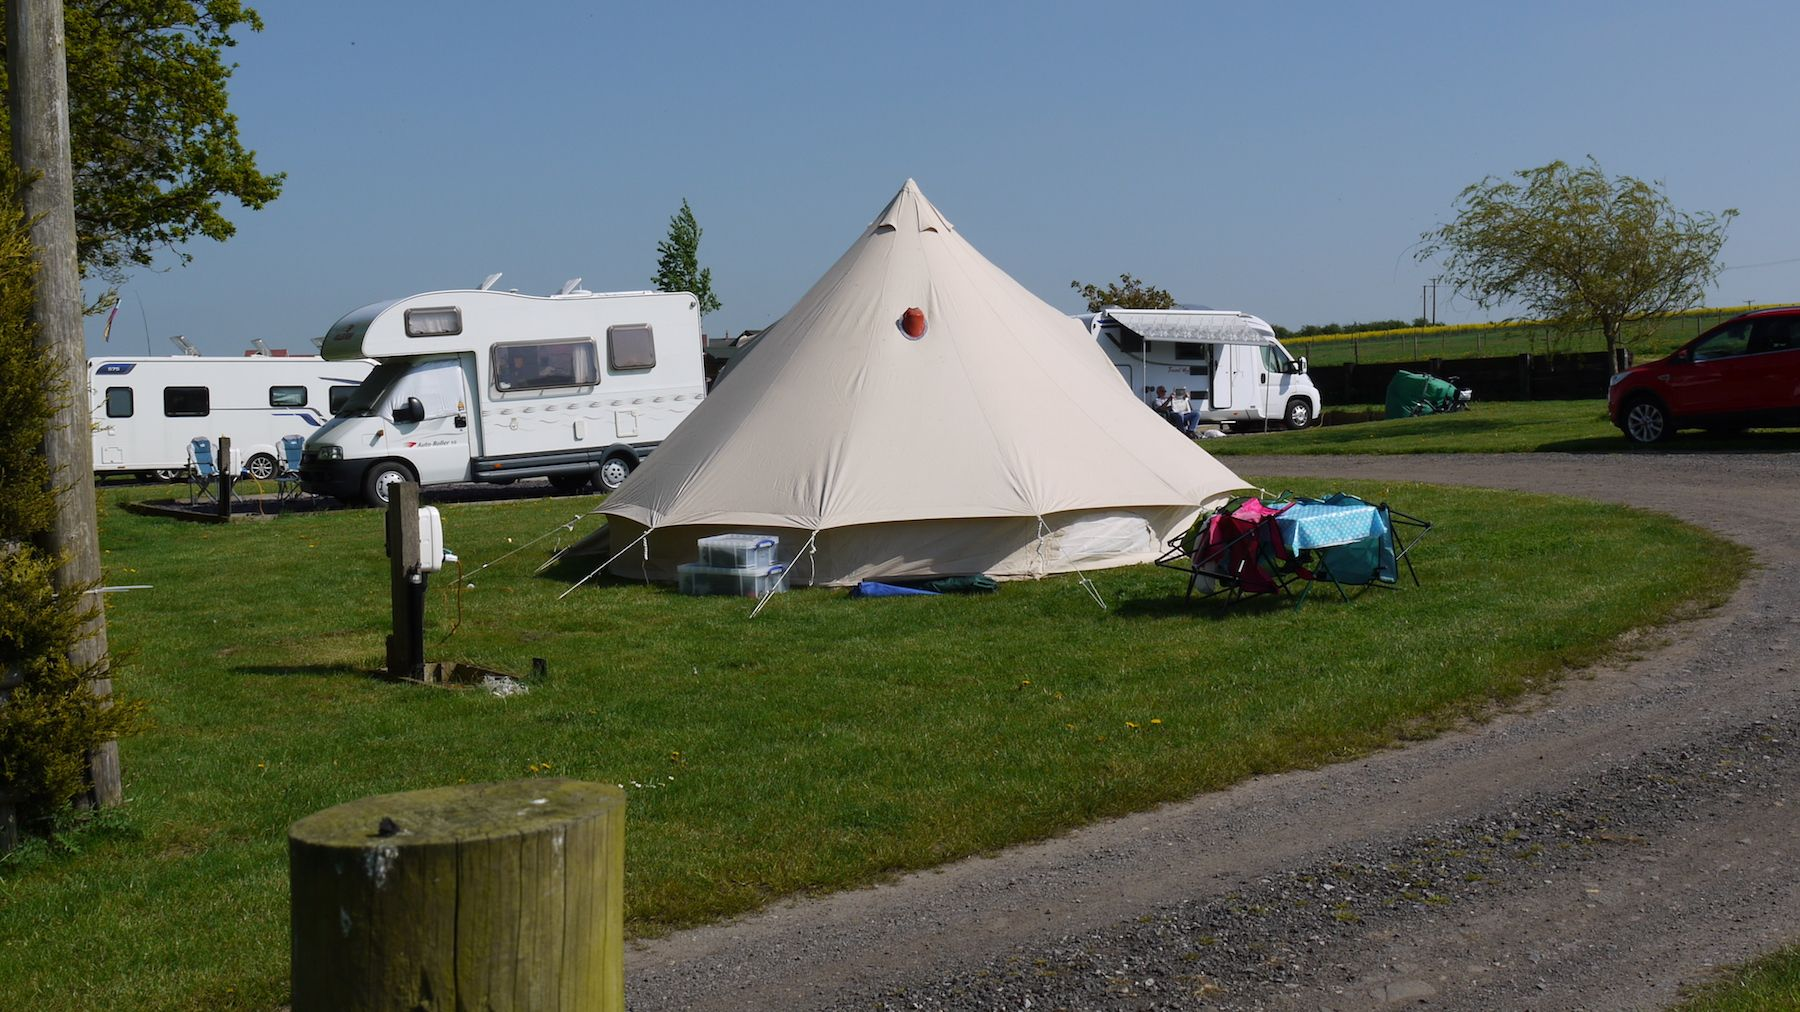 Camping at Midshires Campsite